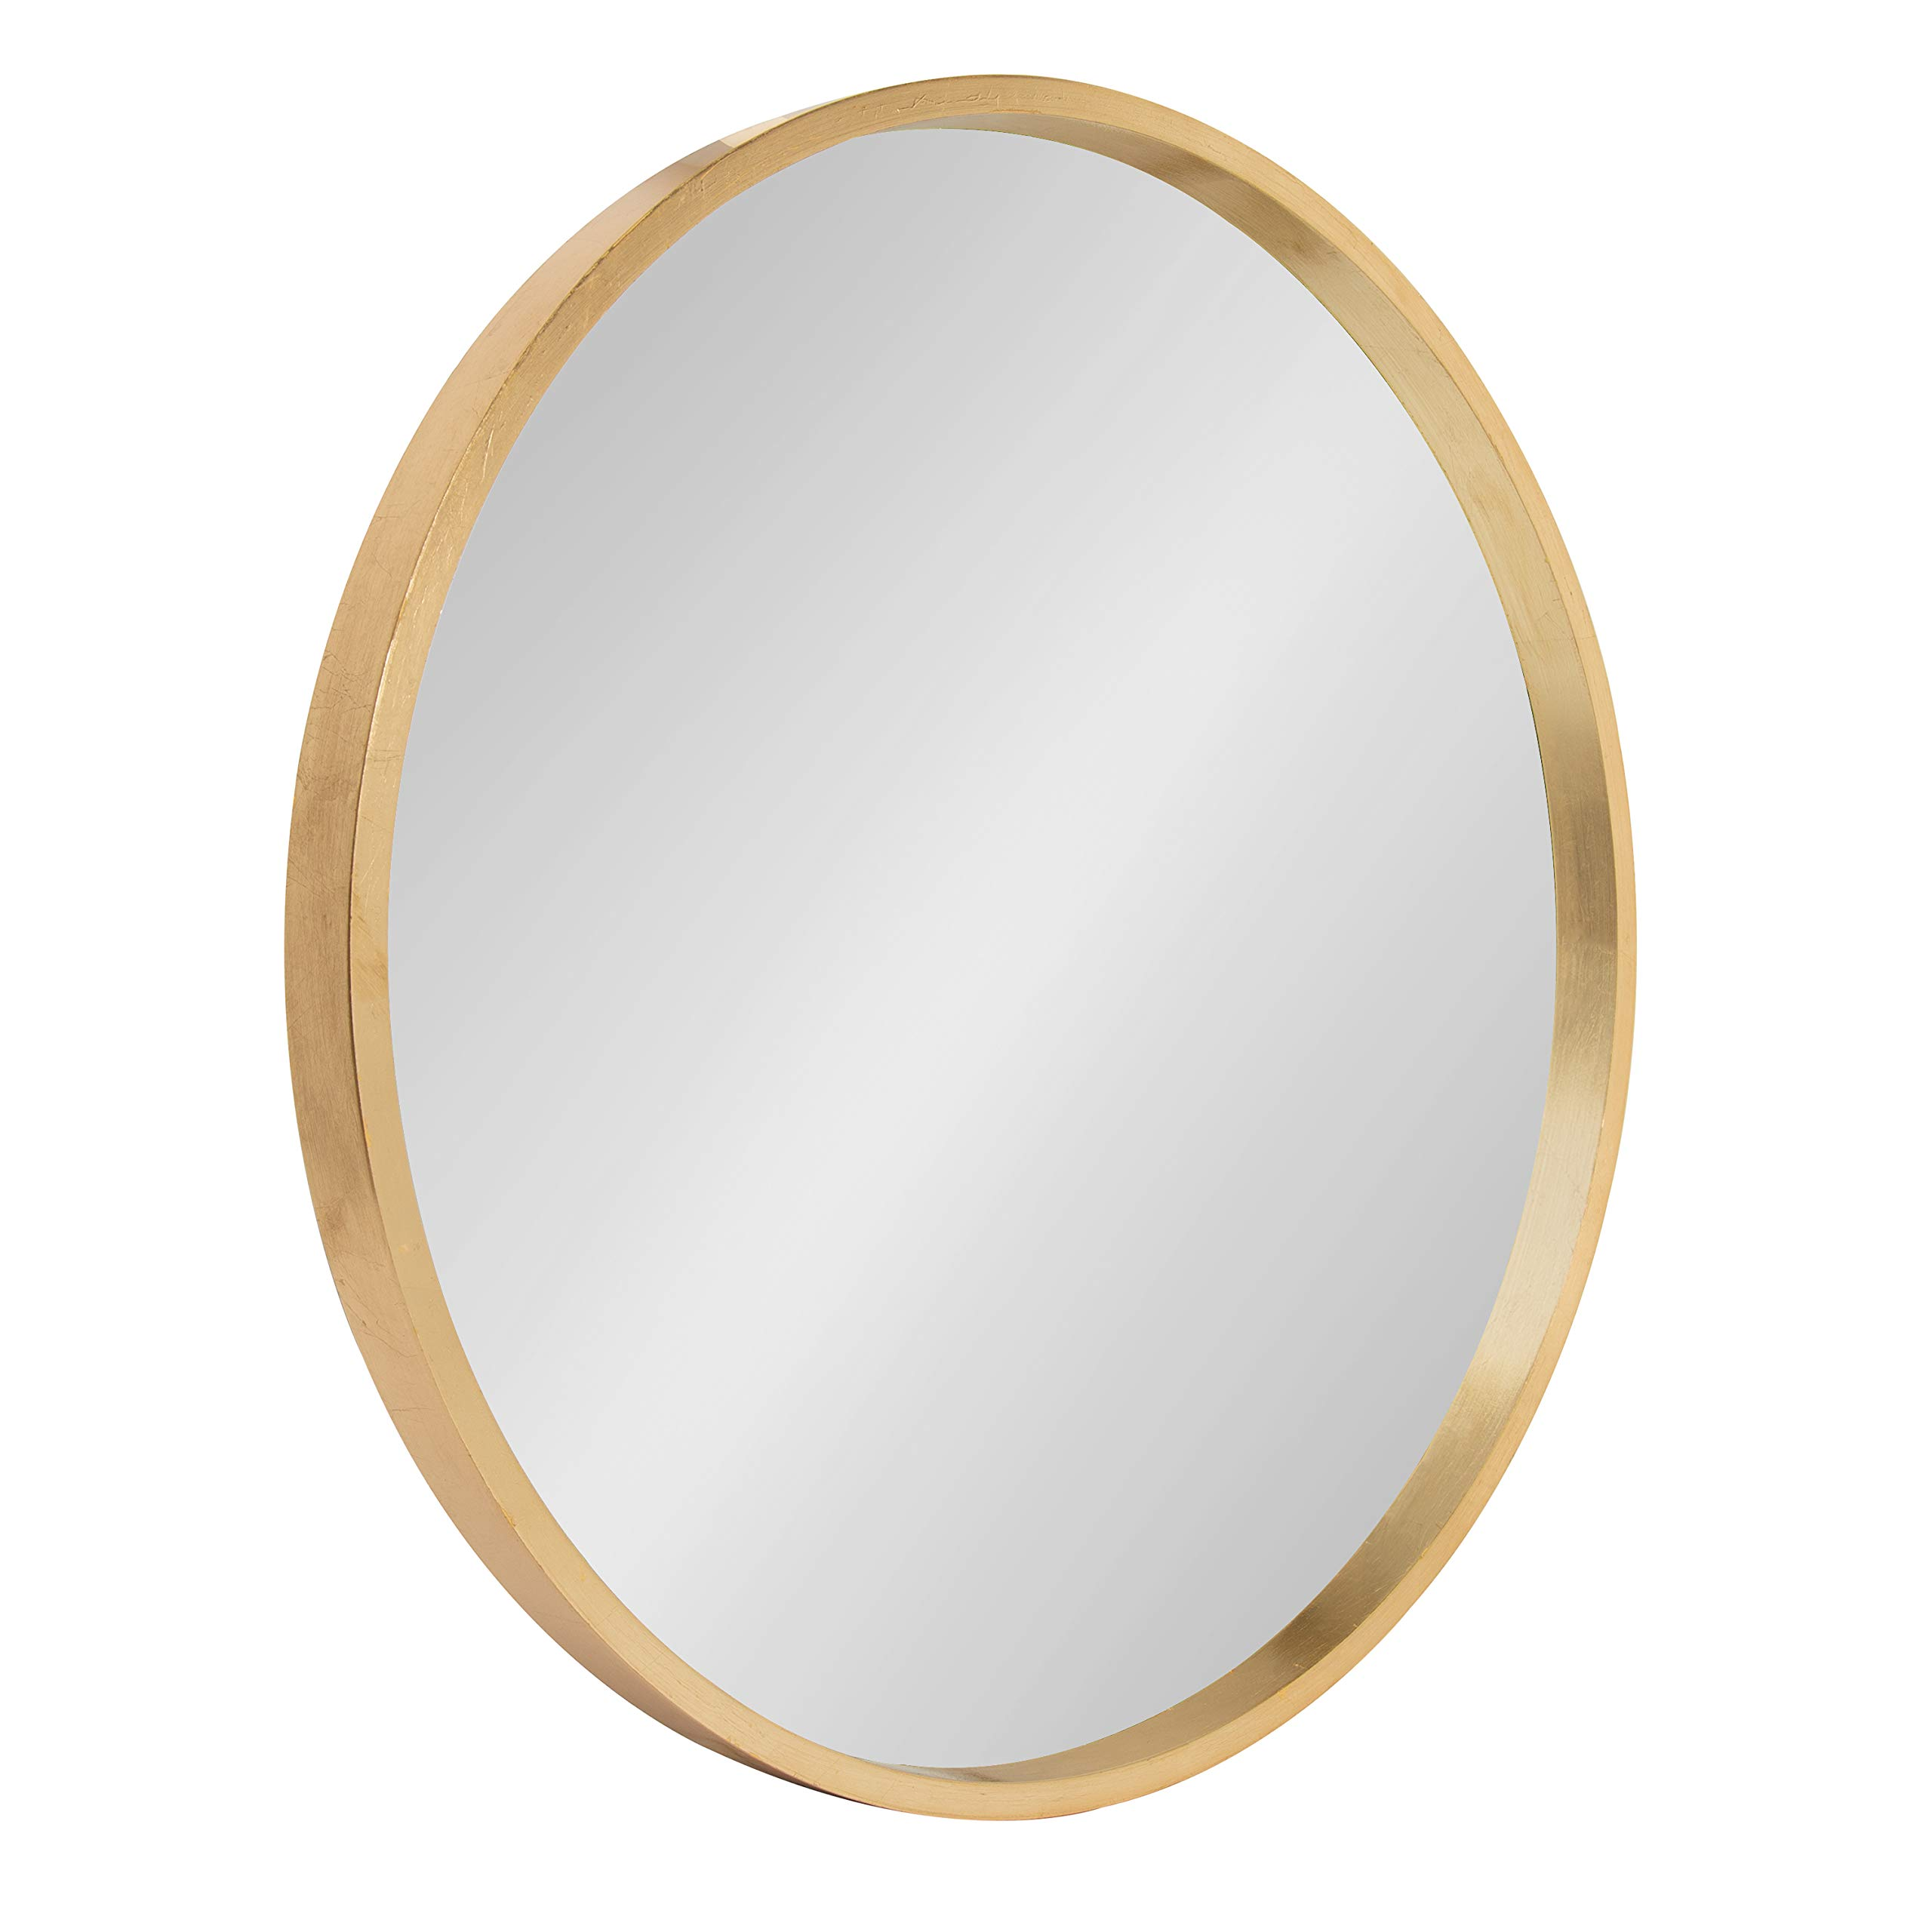 Kate and Laurel Travis Round Wood Accent Wall Mirror, 21.6'' Diameter, Gold